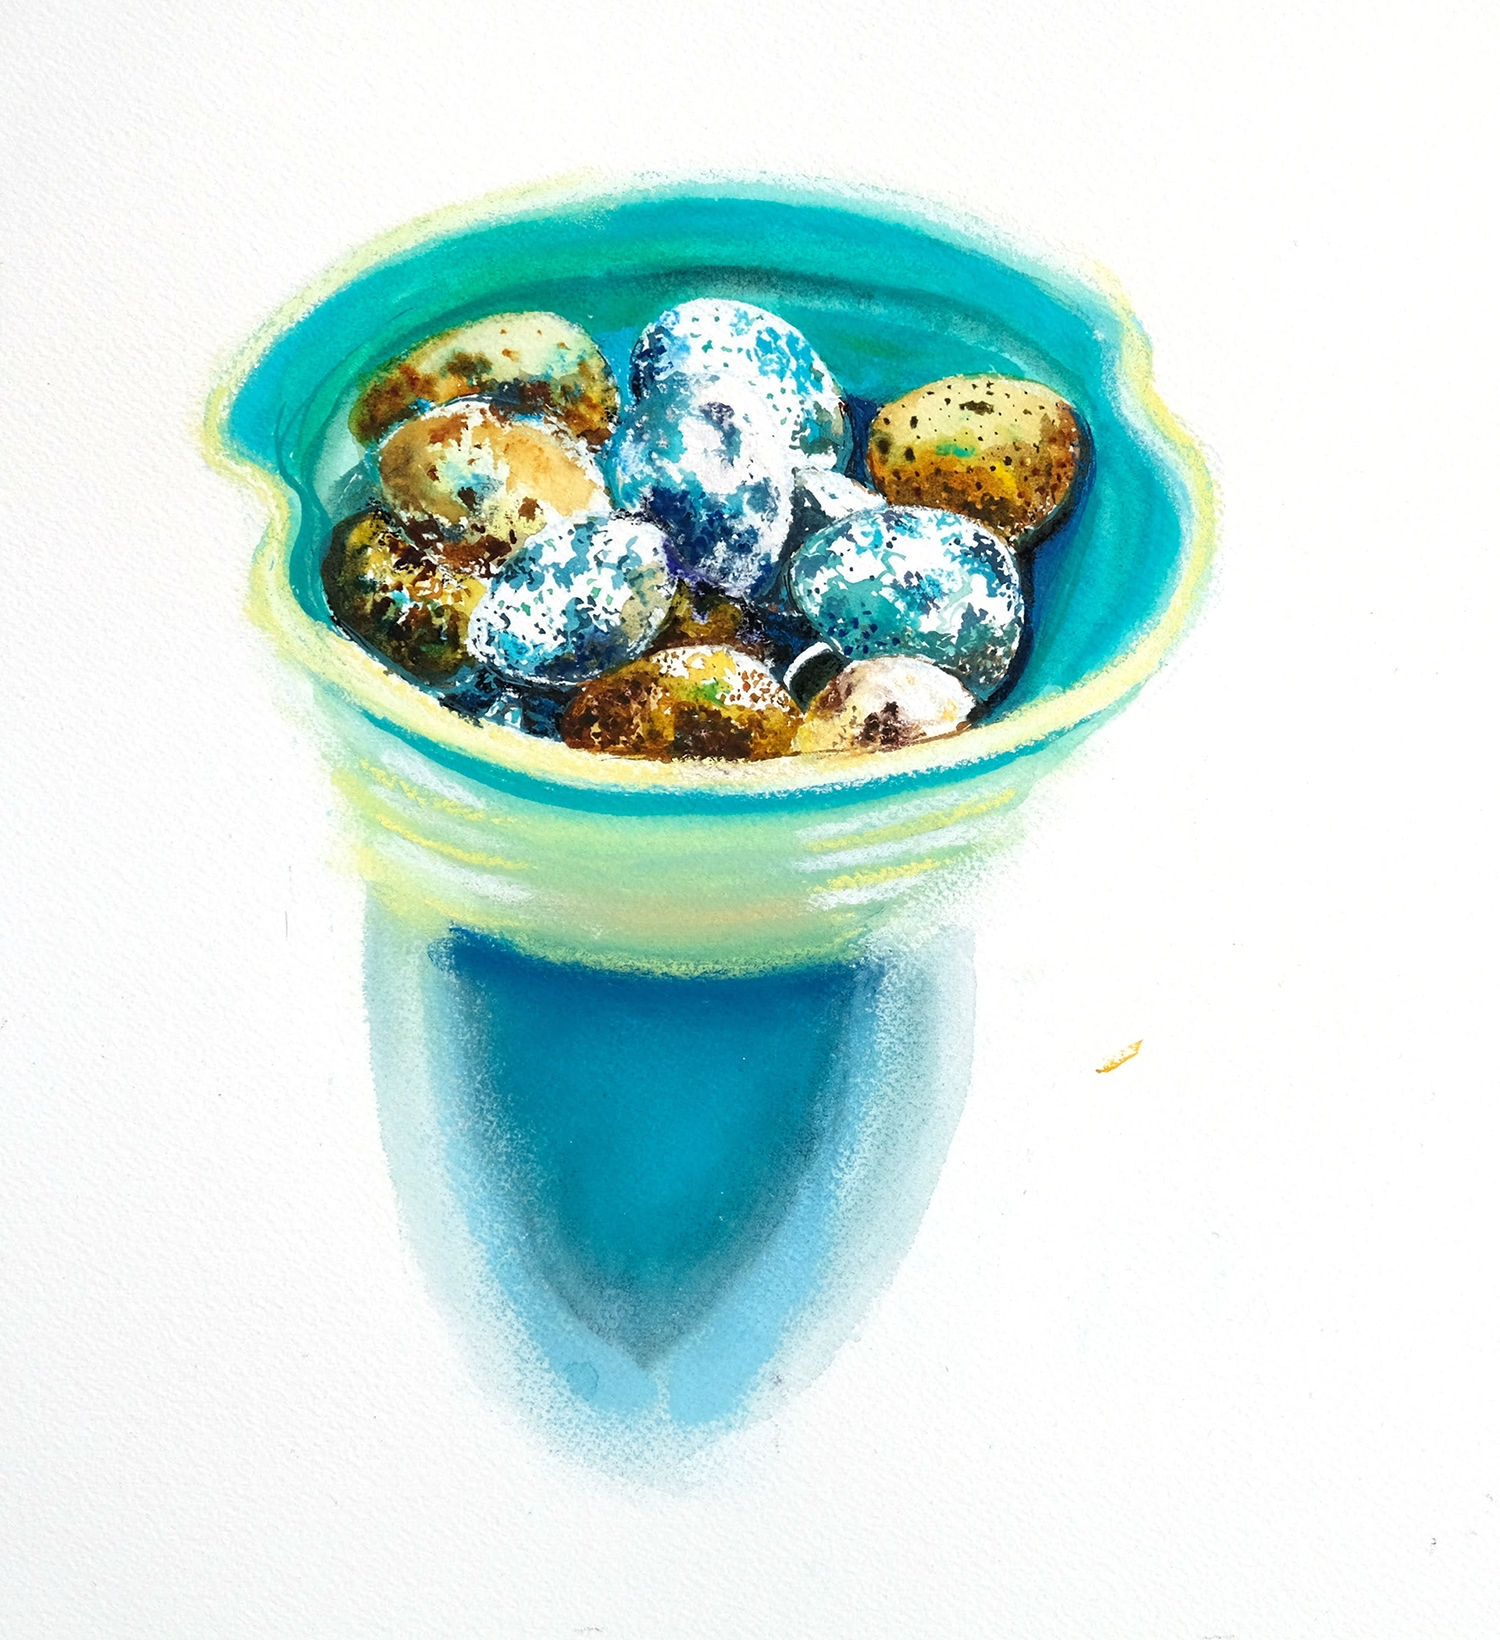 Quail eggs in turquoise and green bowl.